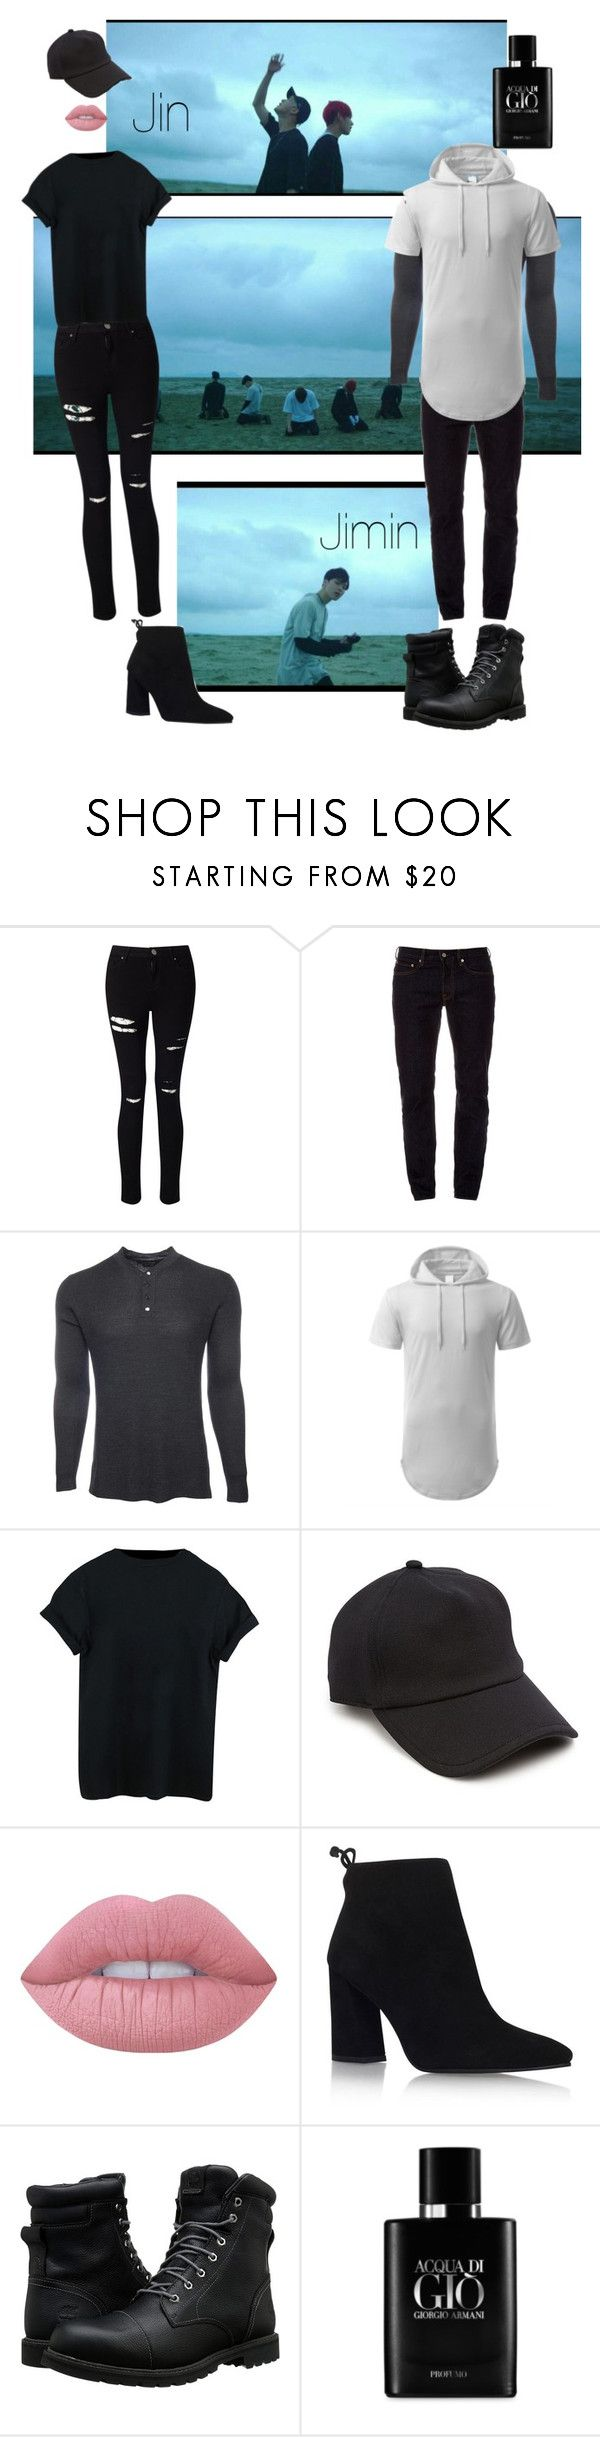 """BTS - Save Me  Jin and Jimin"" by alvorgruvis ❤ liked on Polyvore featuring Miss Selfridge, STONE ISLAND, Marc Jacobs, rag & bone, Lime Crime, Stuart Weitzman, Timberland and Giorgio Armani"